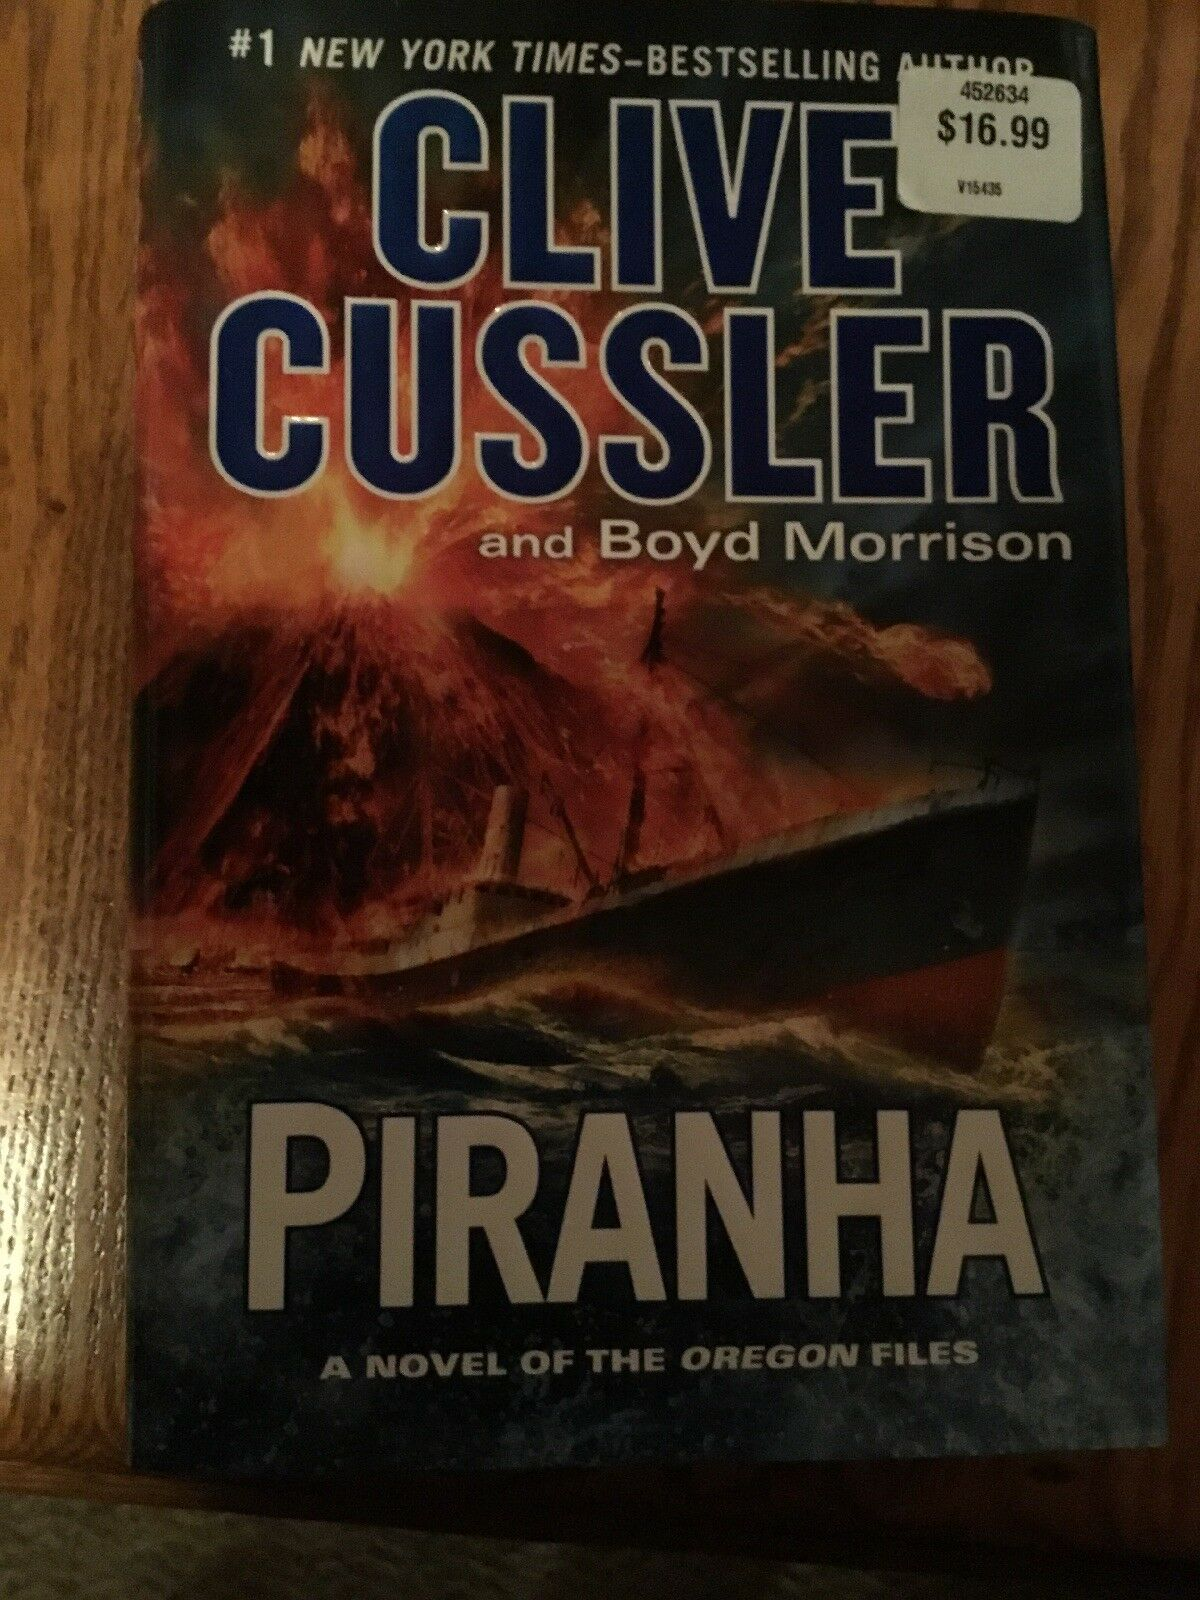 Oregon Files: Piranha 10 by Clive Cussler and Boyd Morrison (2015,  Hardcover)   eBay